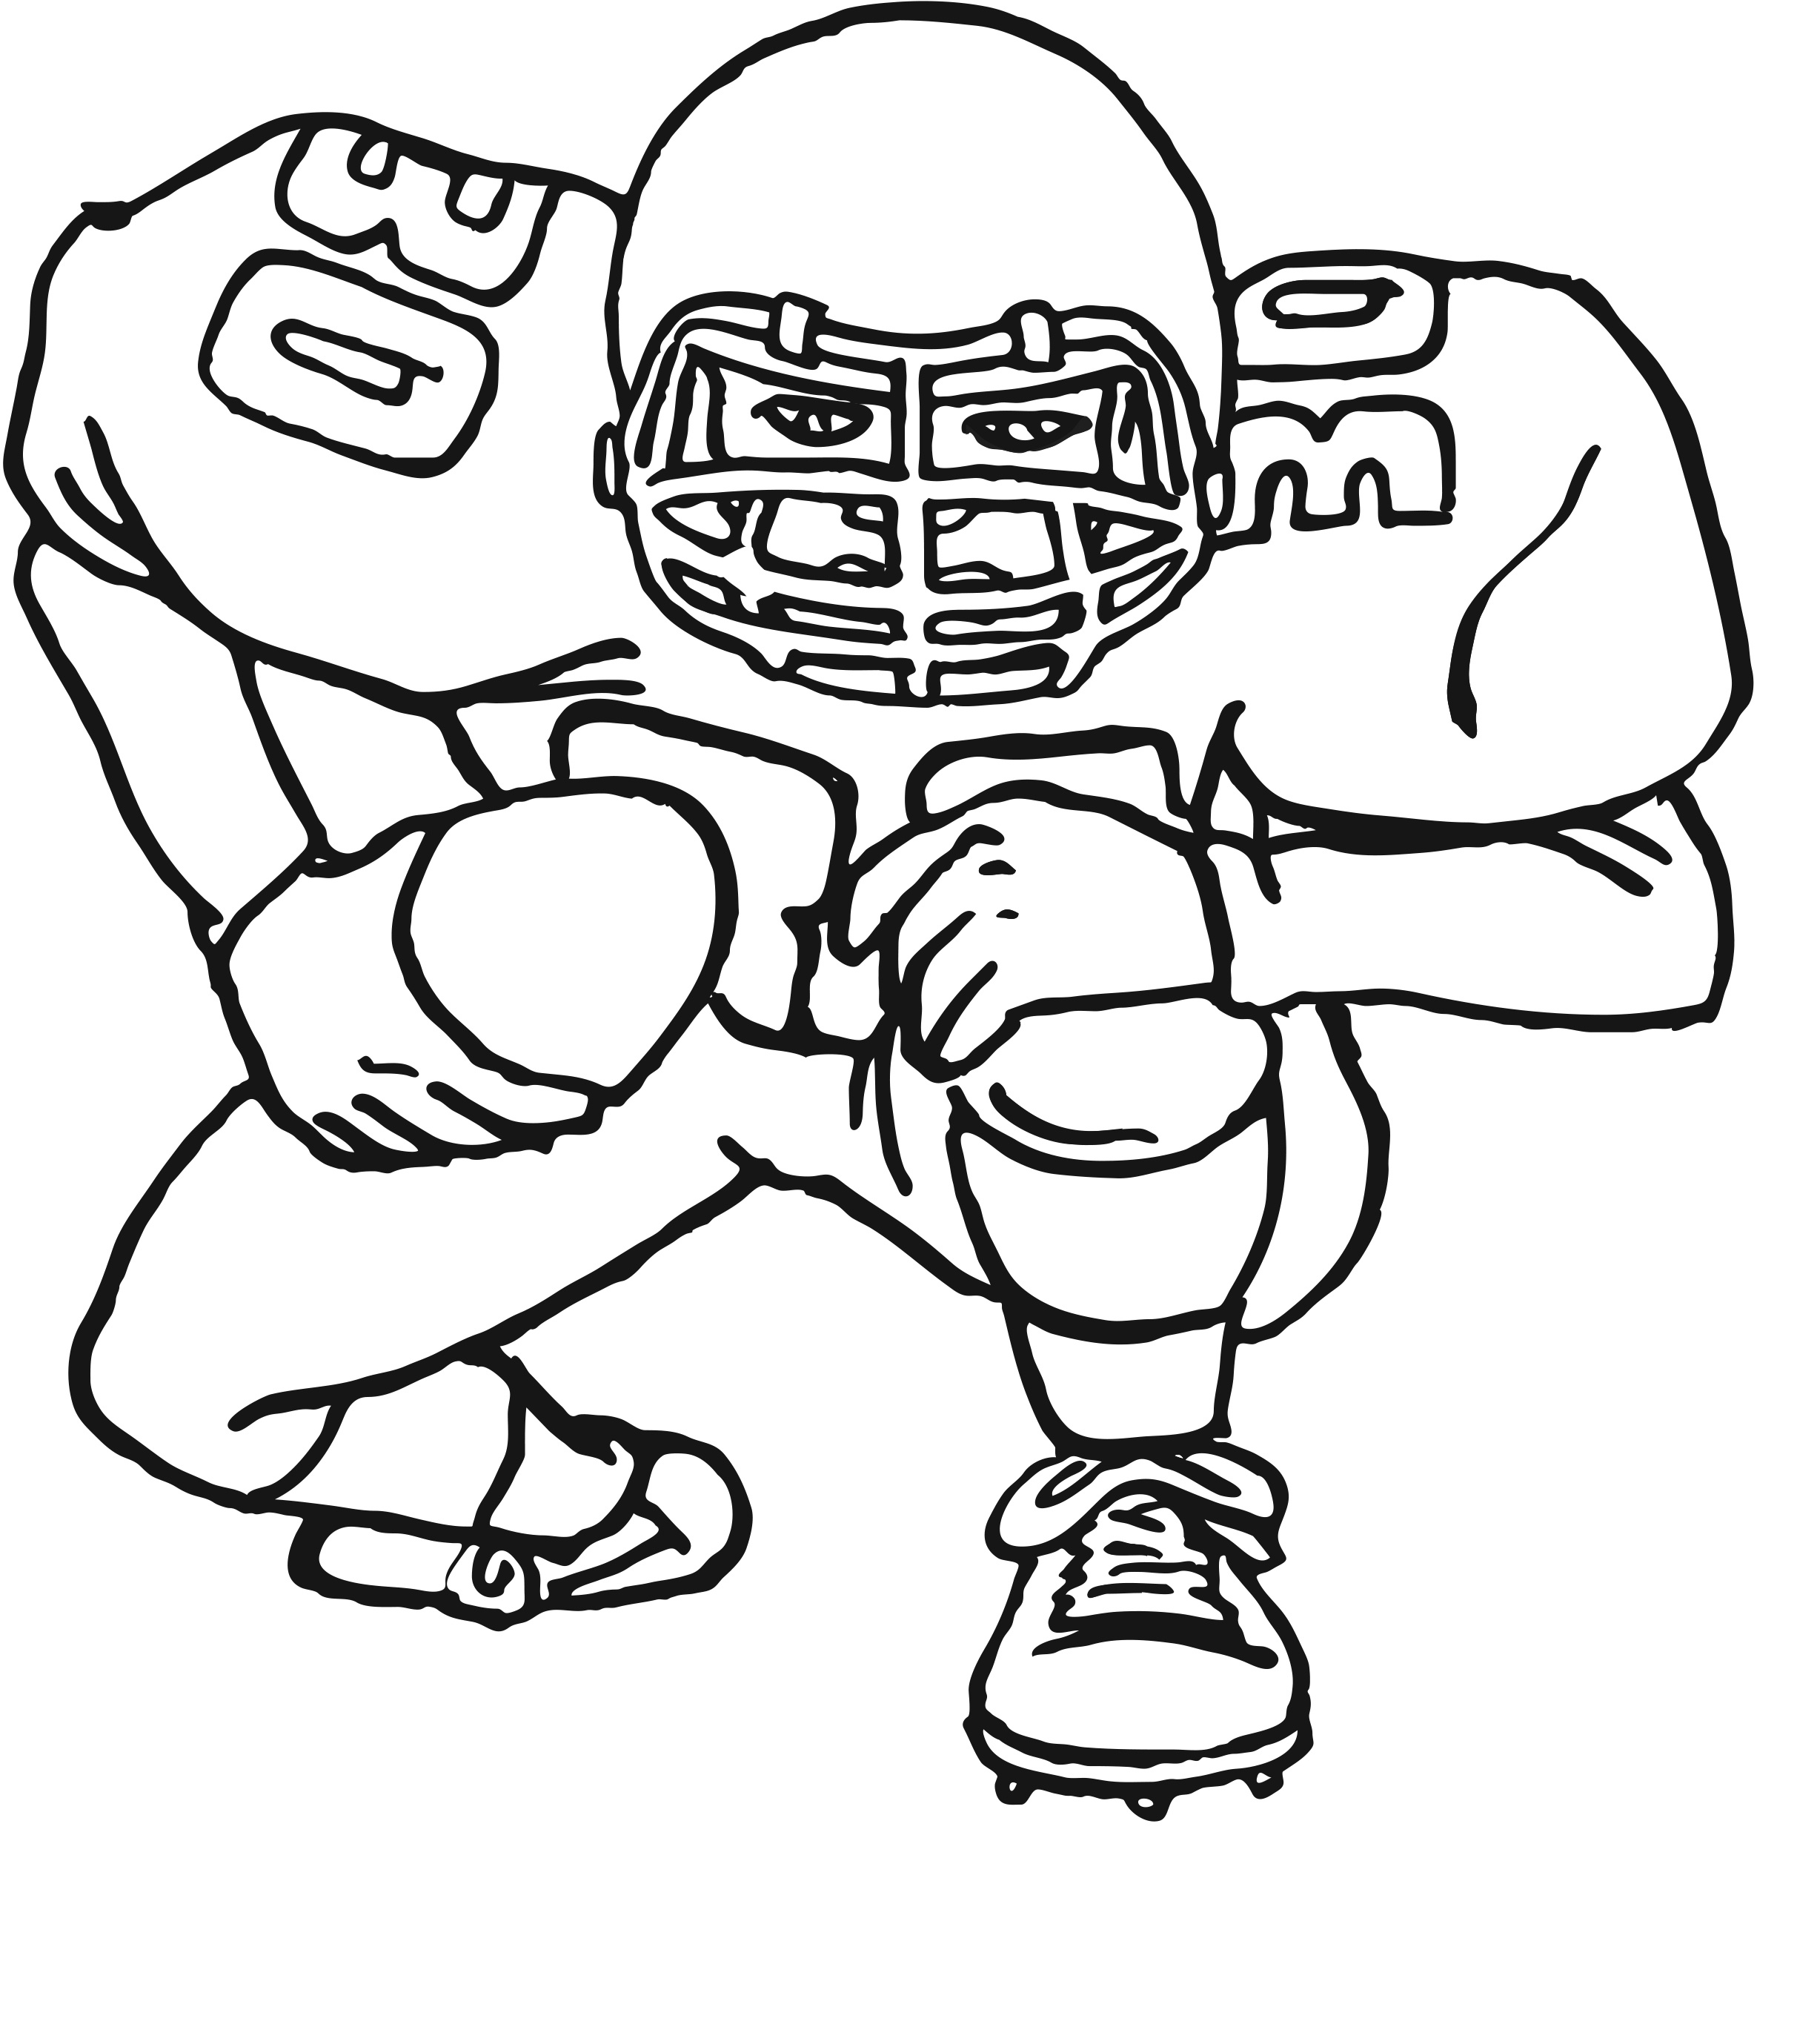 Free Printable Seahawks Coloring Pages | Free Printable